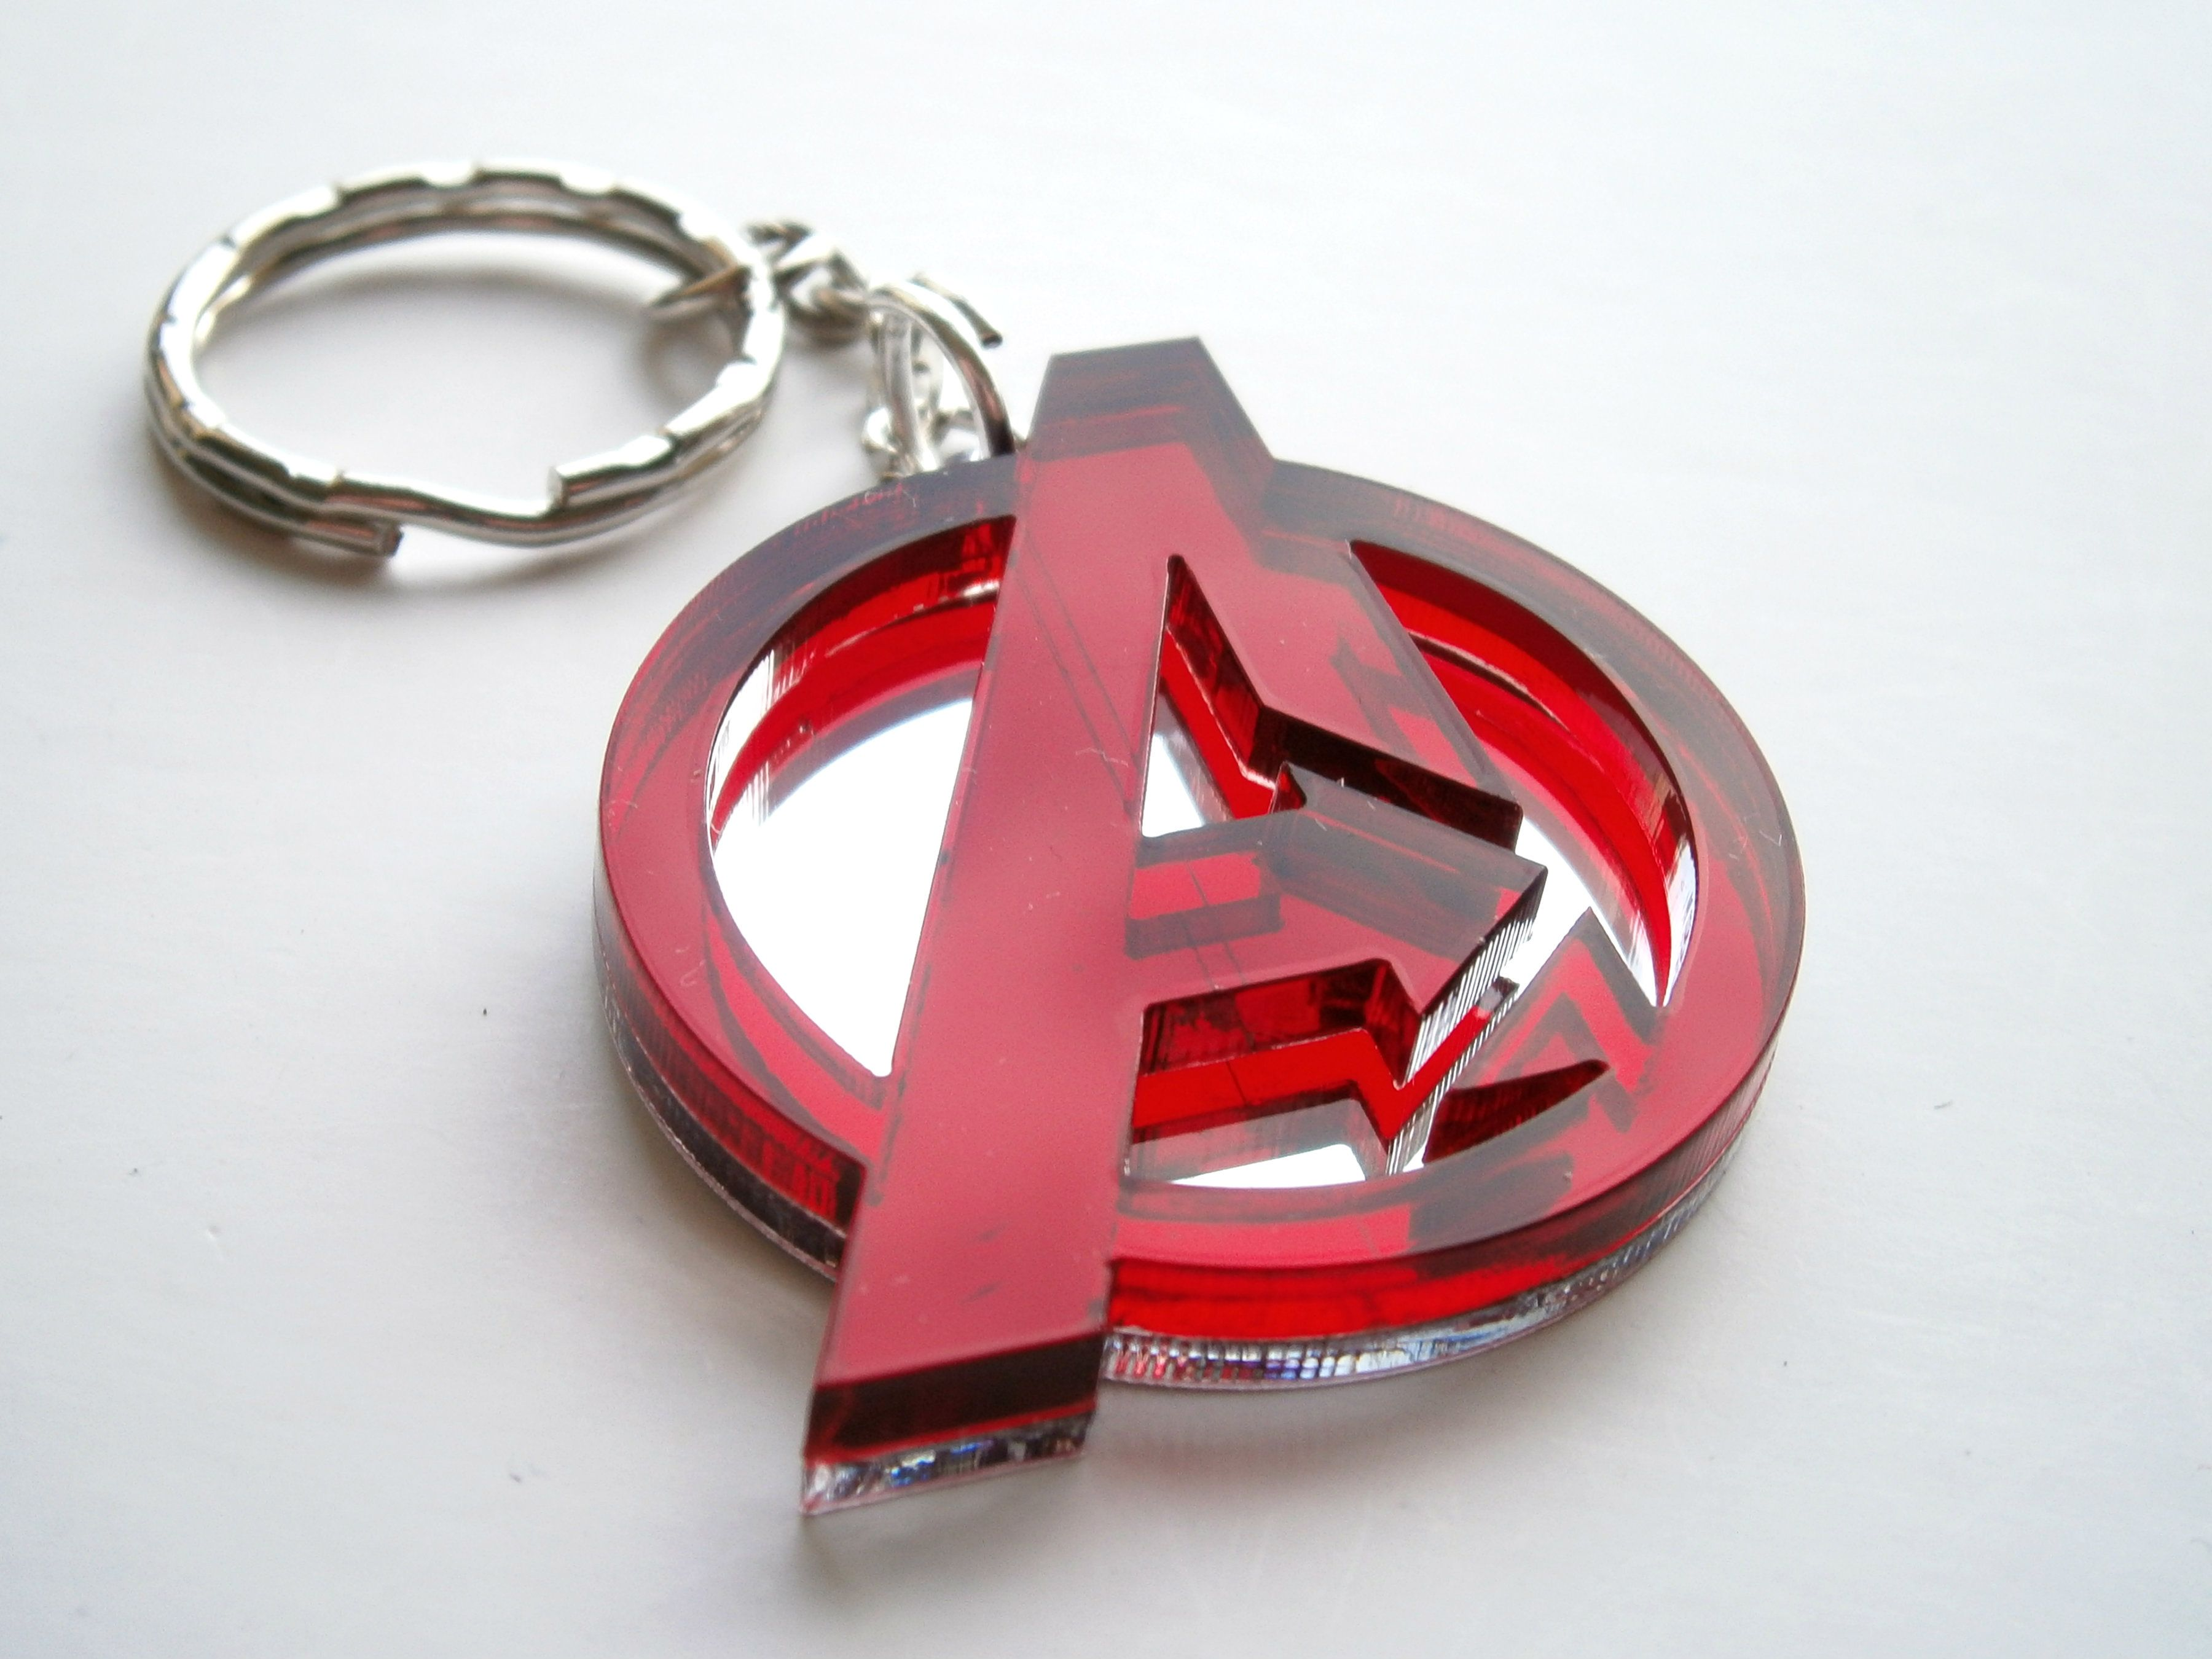 laser cut acrylic keyring - Google Search | Bricolaje y manualidades ...